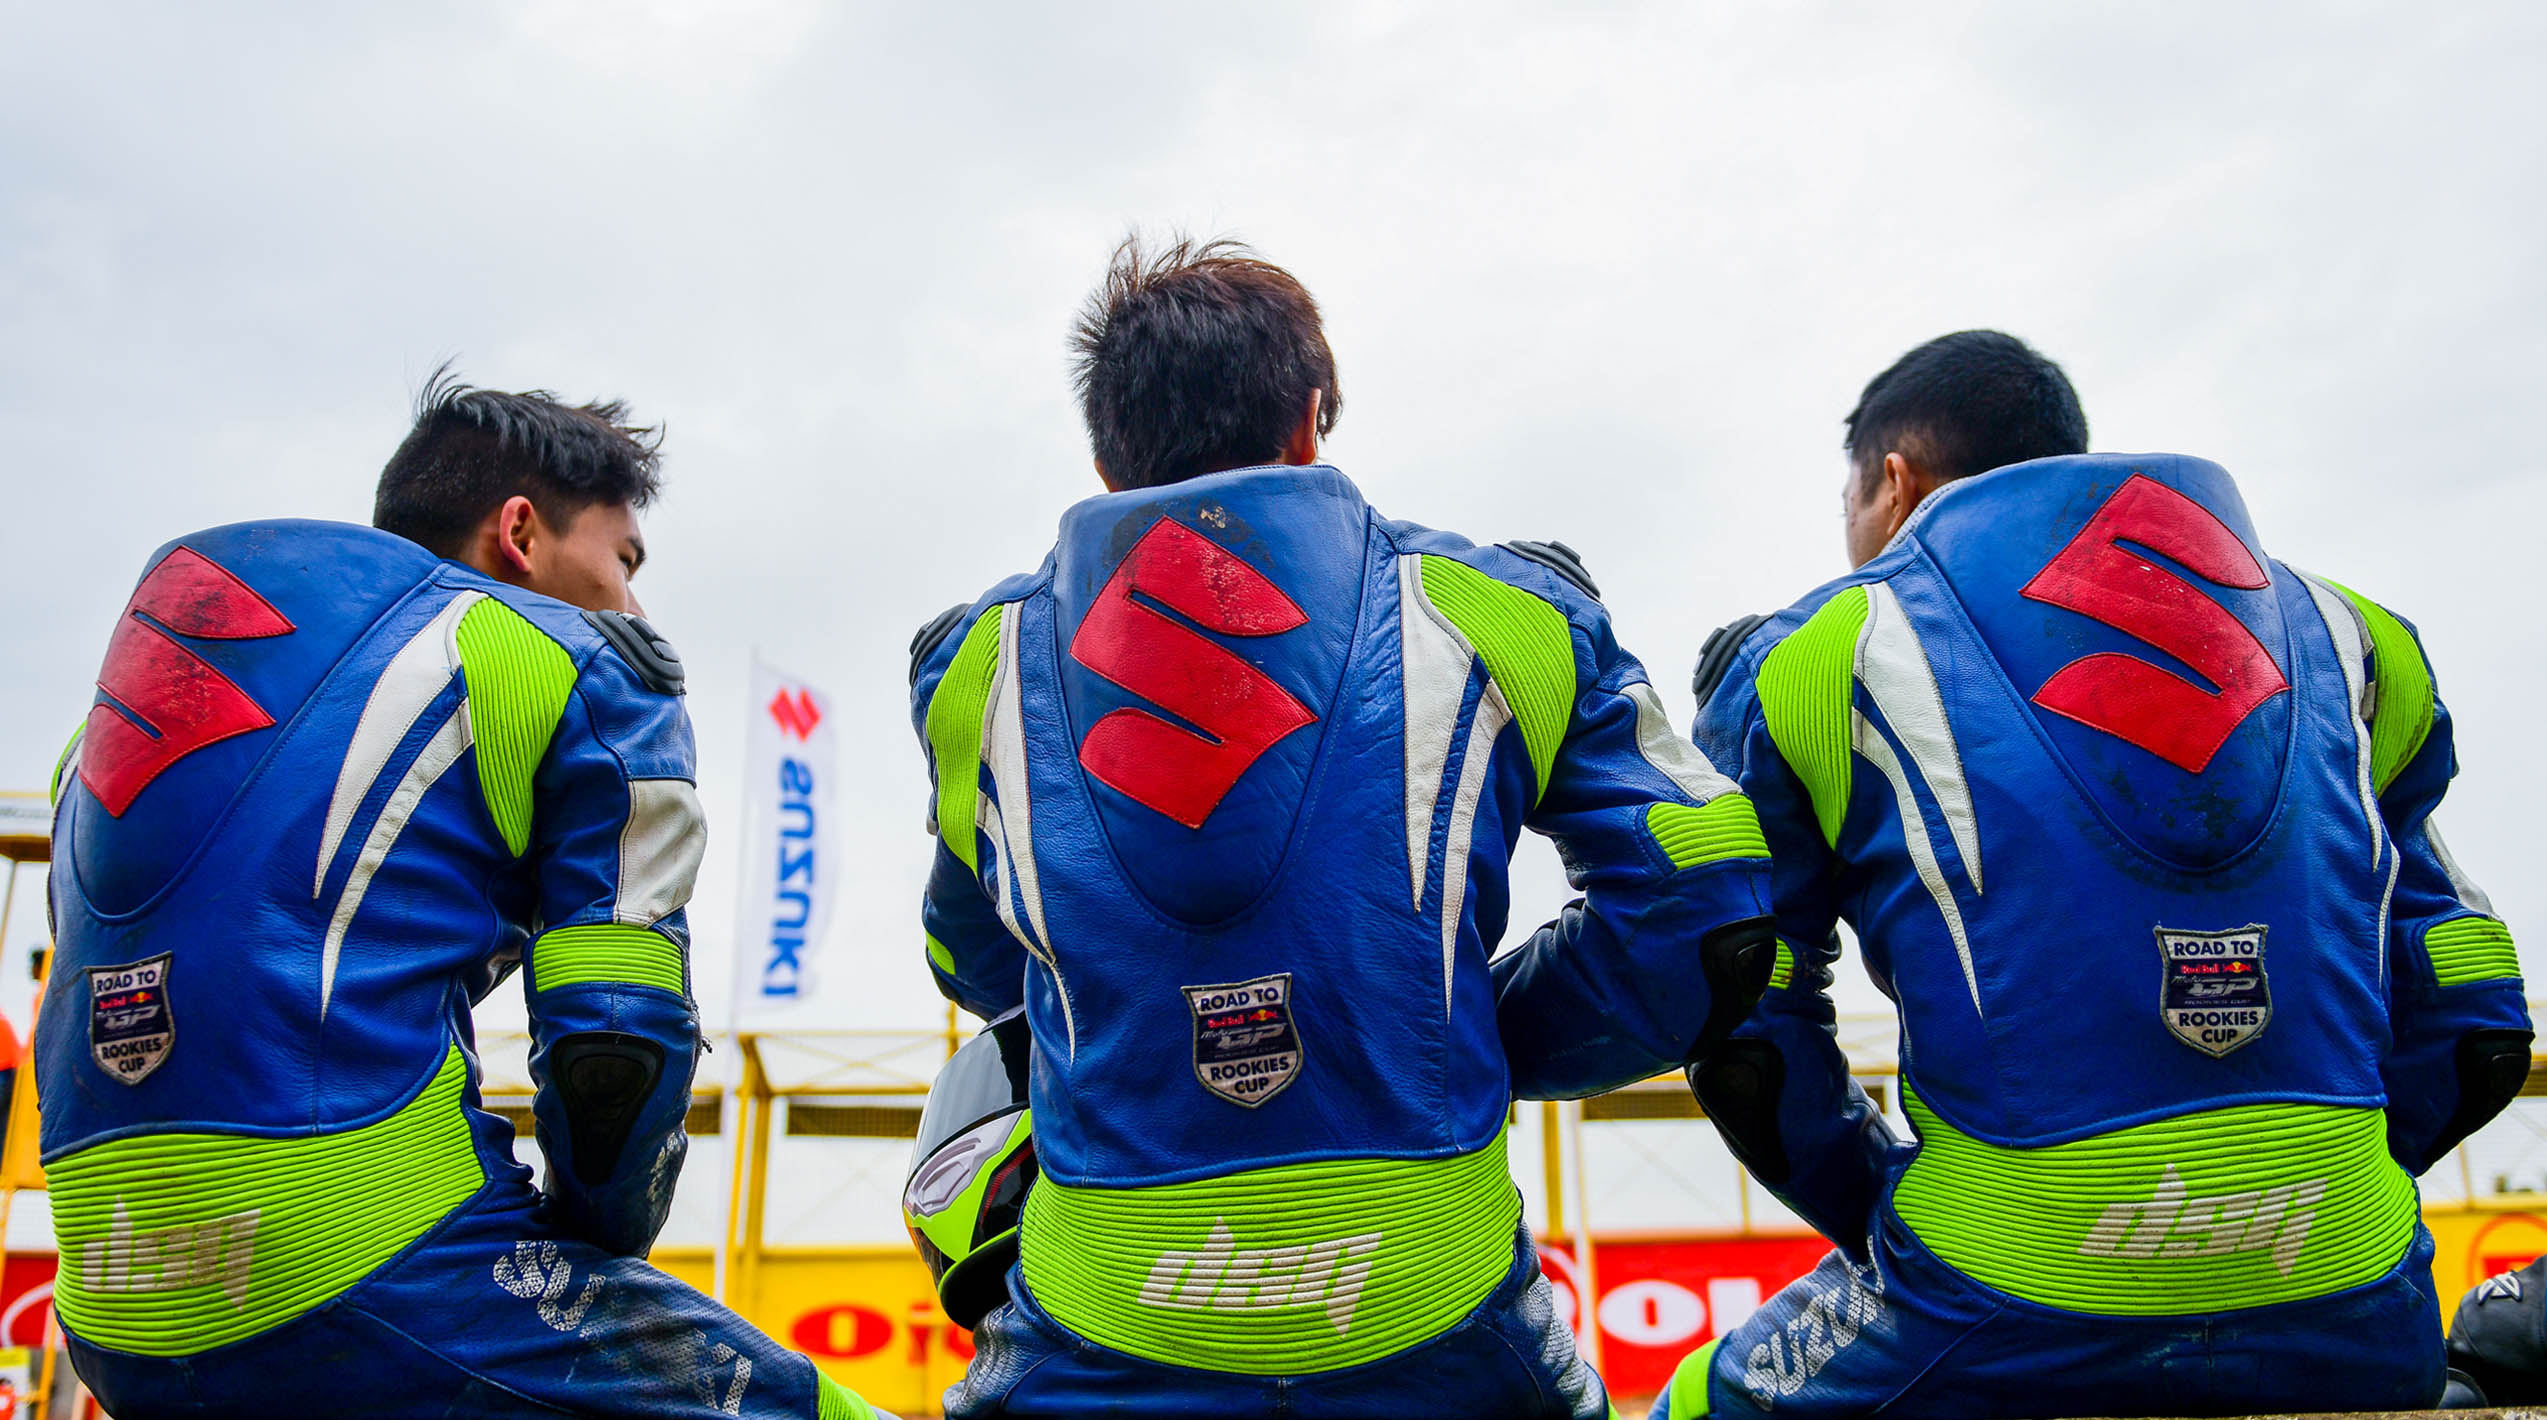 Road to Rookies Cup 2019